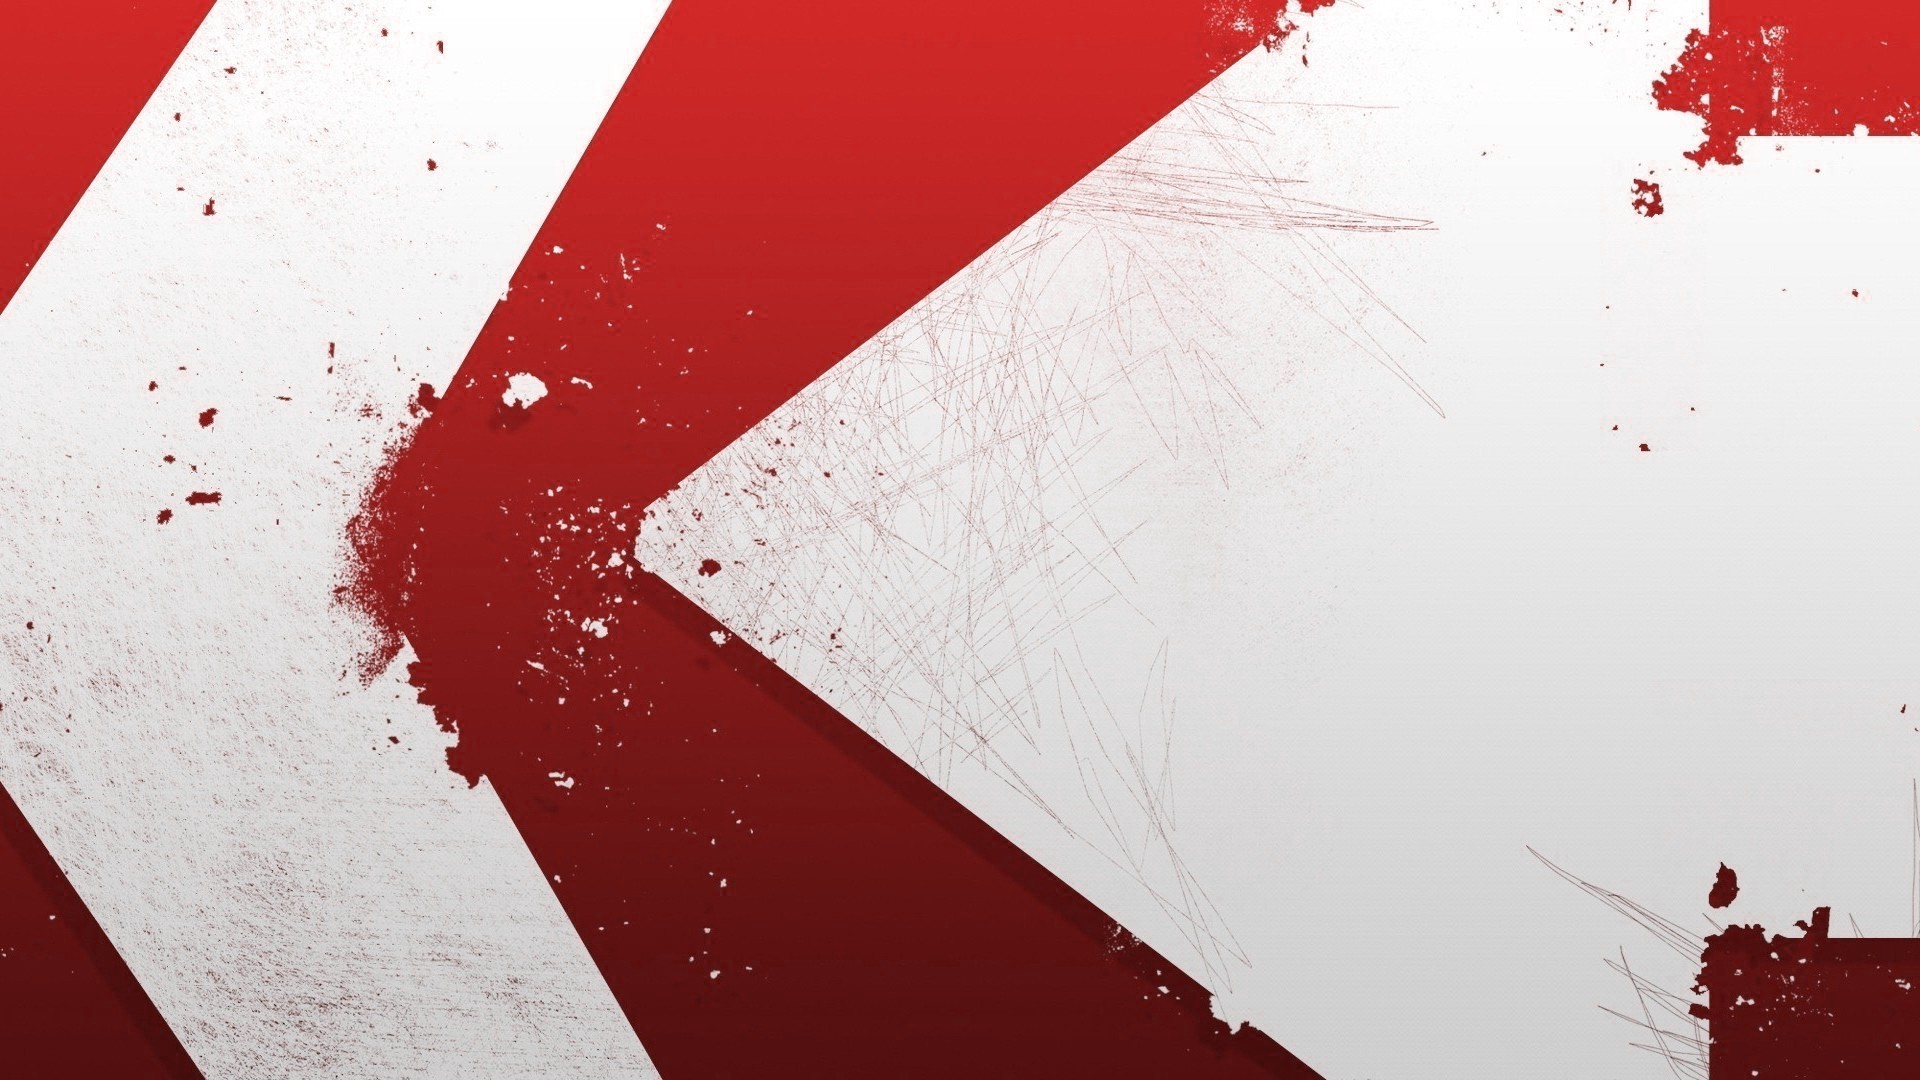 Red and white arrows wallpaper   1045015 1920x1080